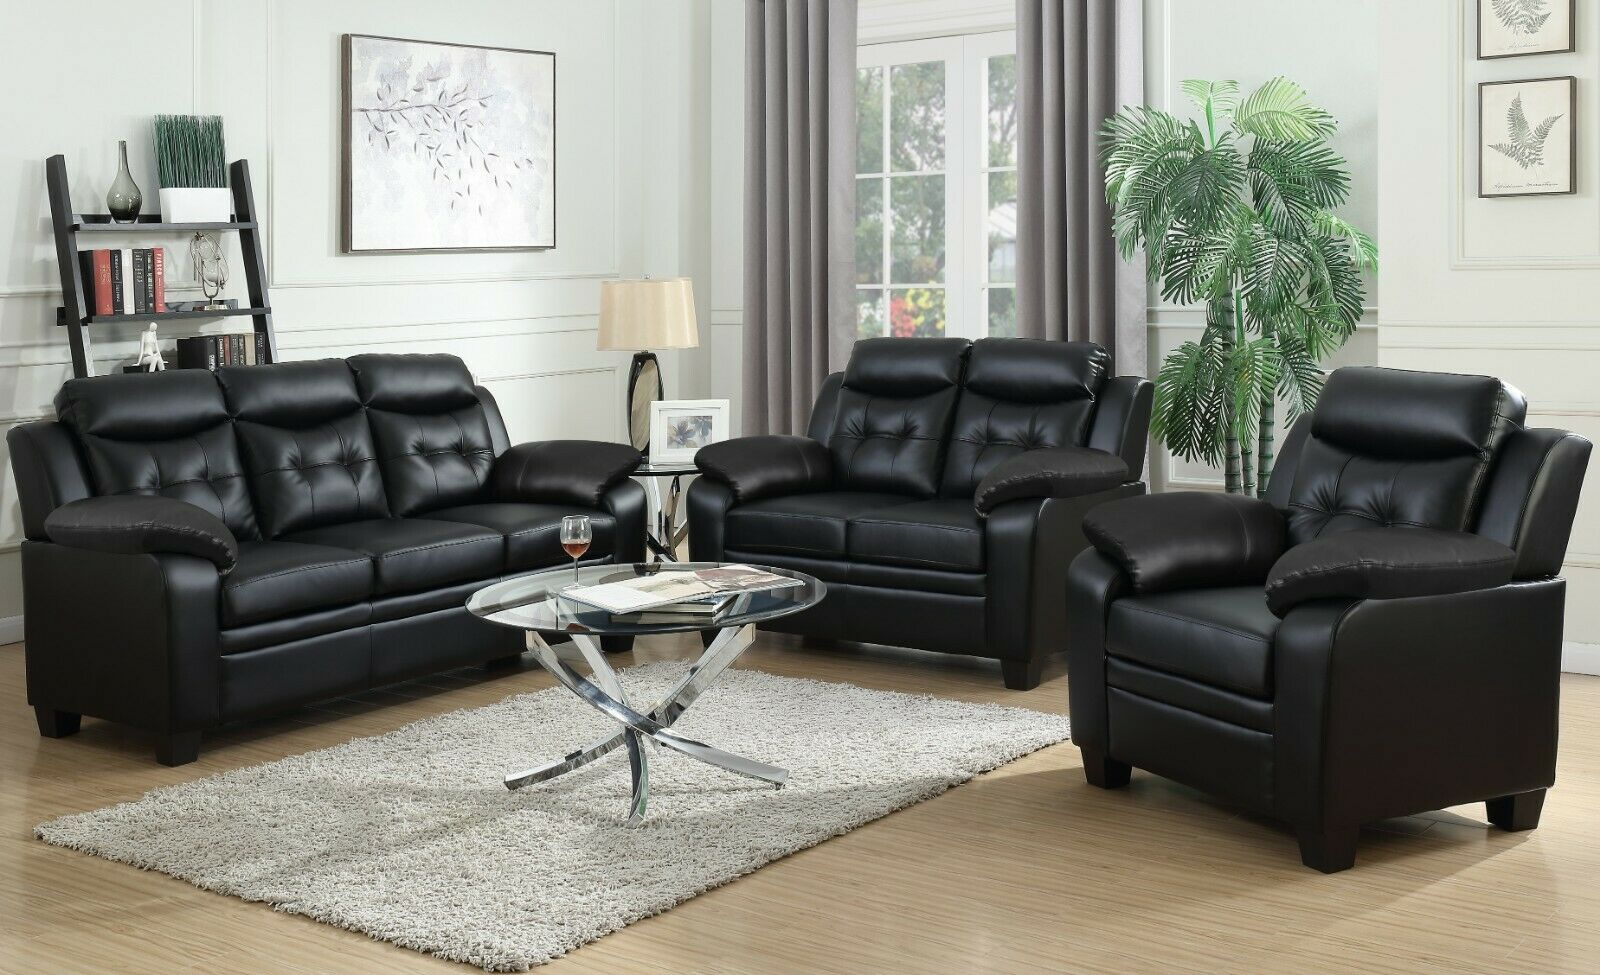 Modern Casual 3 Piece Sofa Loveseat Chair Living Room Set Black Faux Leather